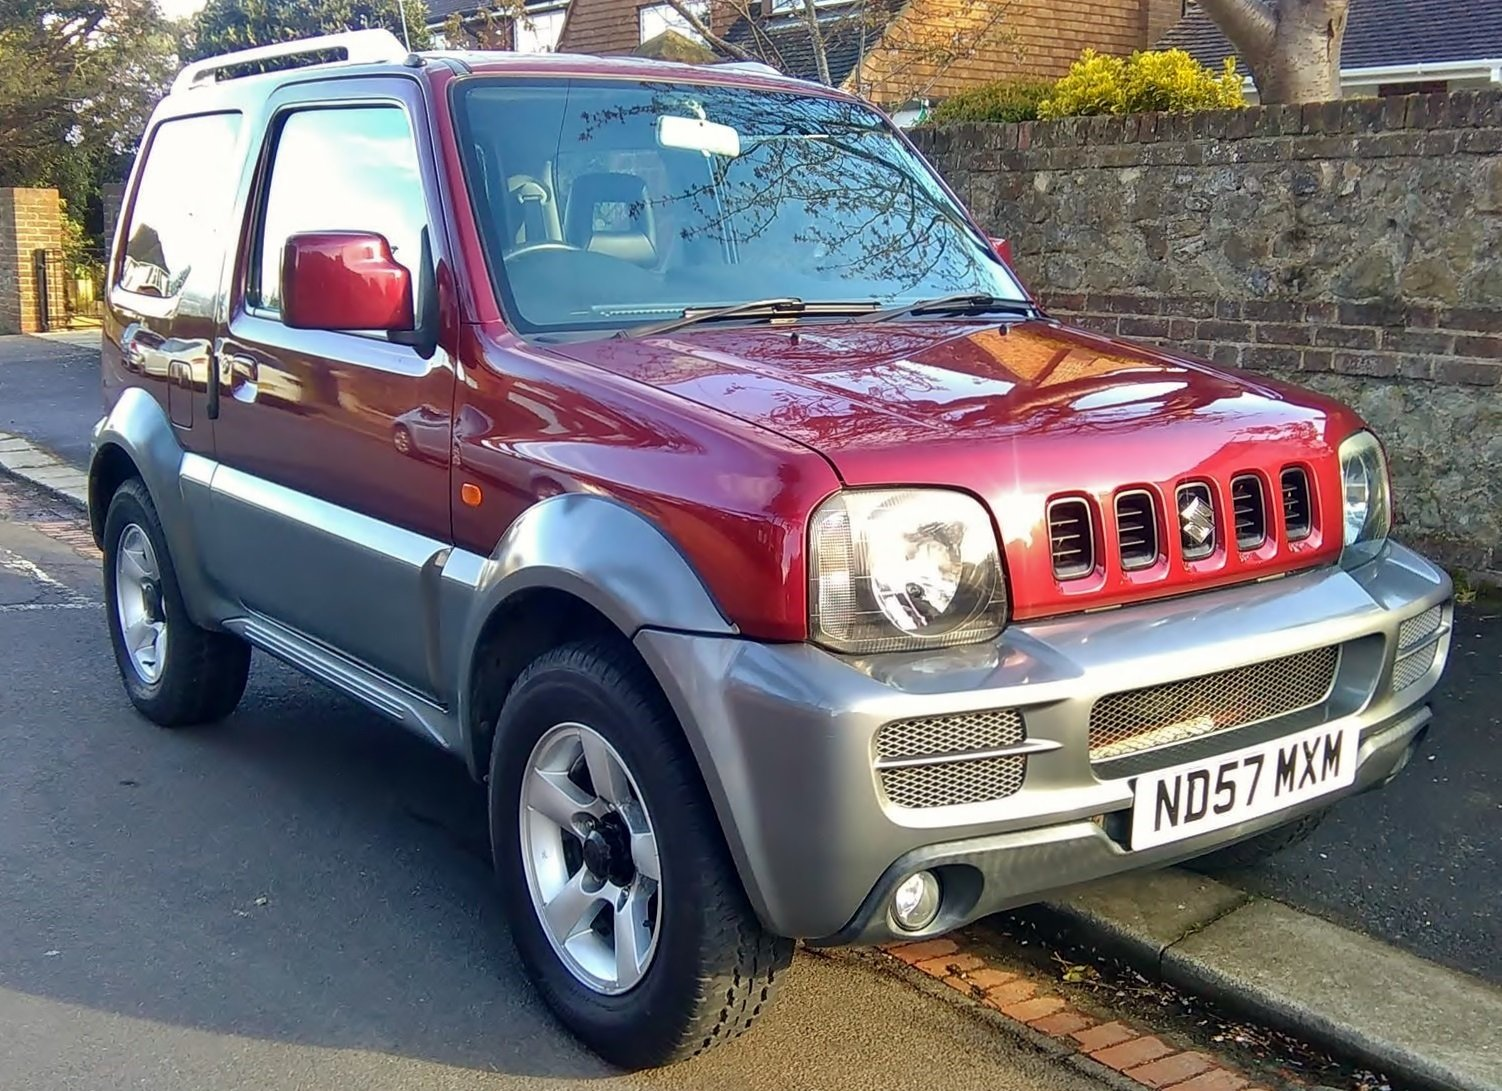 2007 Jimny PX SWAP Car 4x4 Nissan Toyota Jeep Honda Van For Sale (picture 1 of 6)